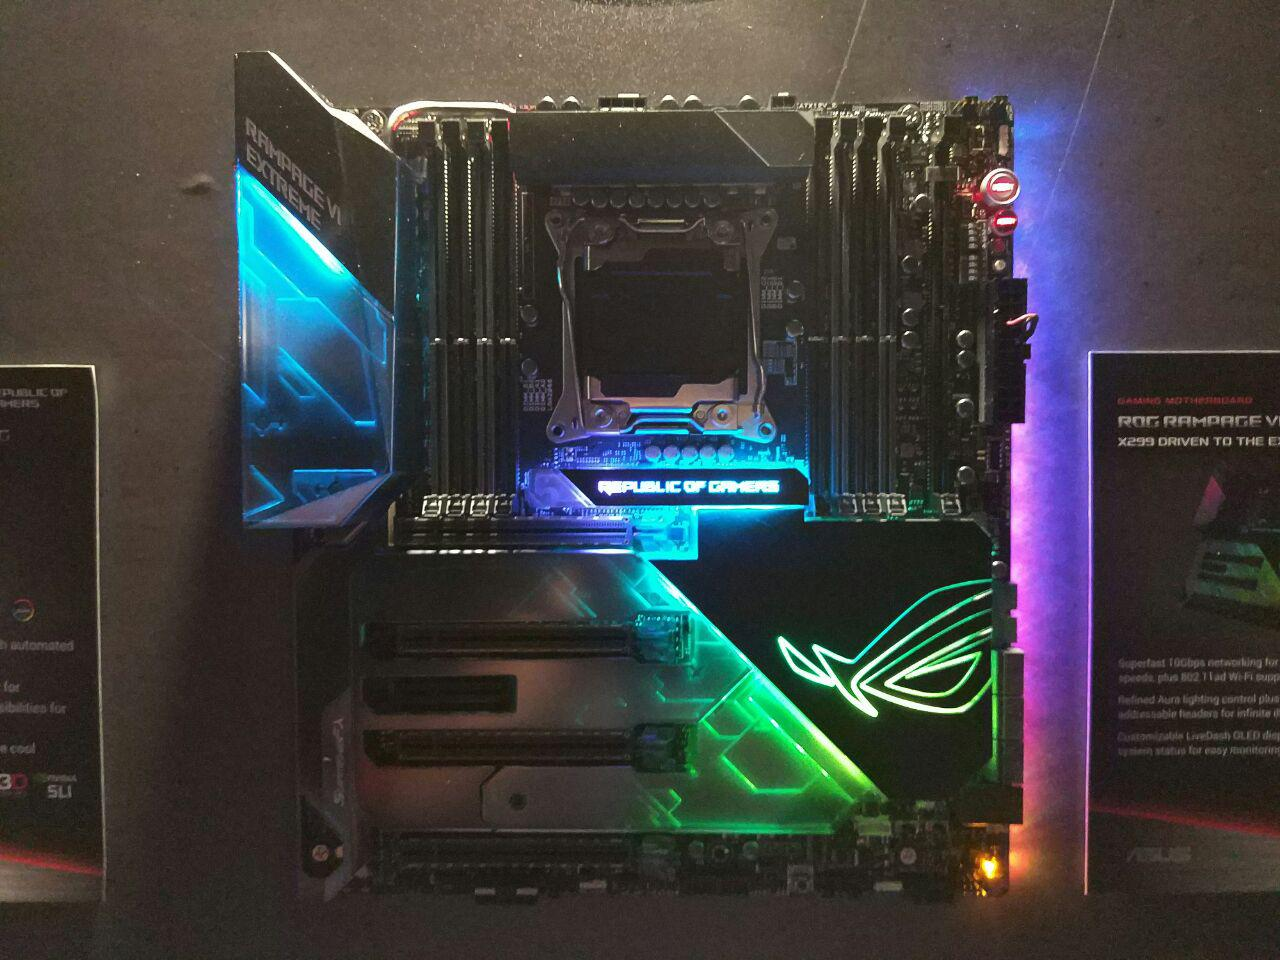 ASUS X299 HEDT Motherboards Detailed - Flagship Rampage VI Extreme